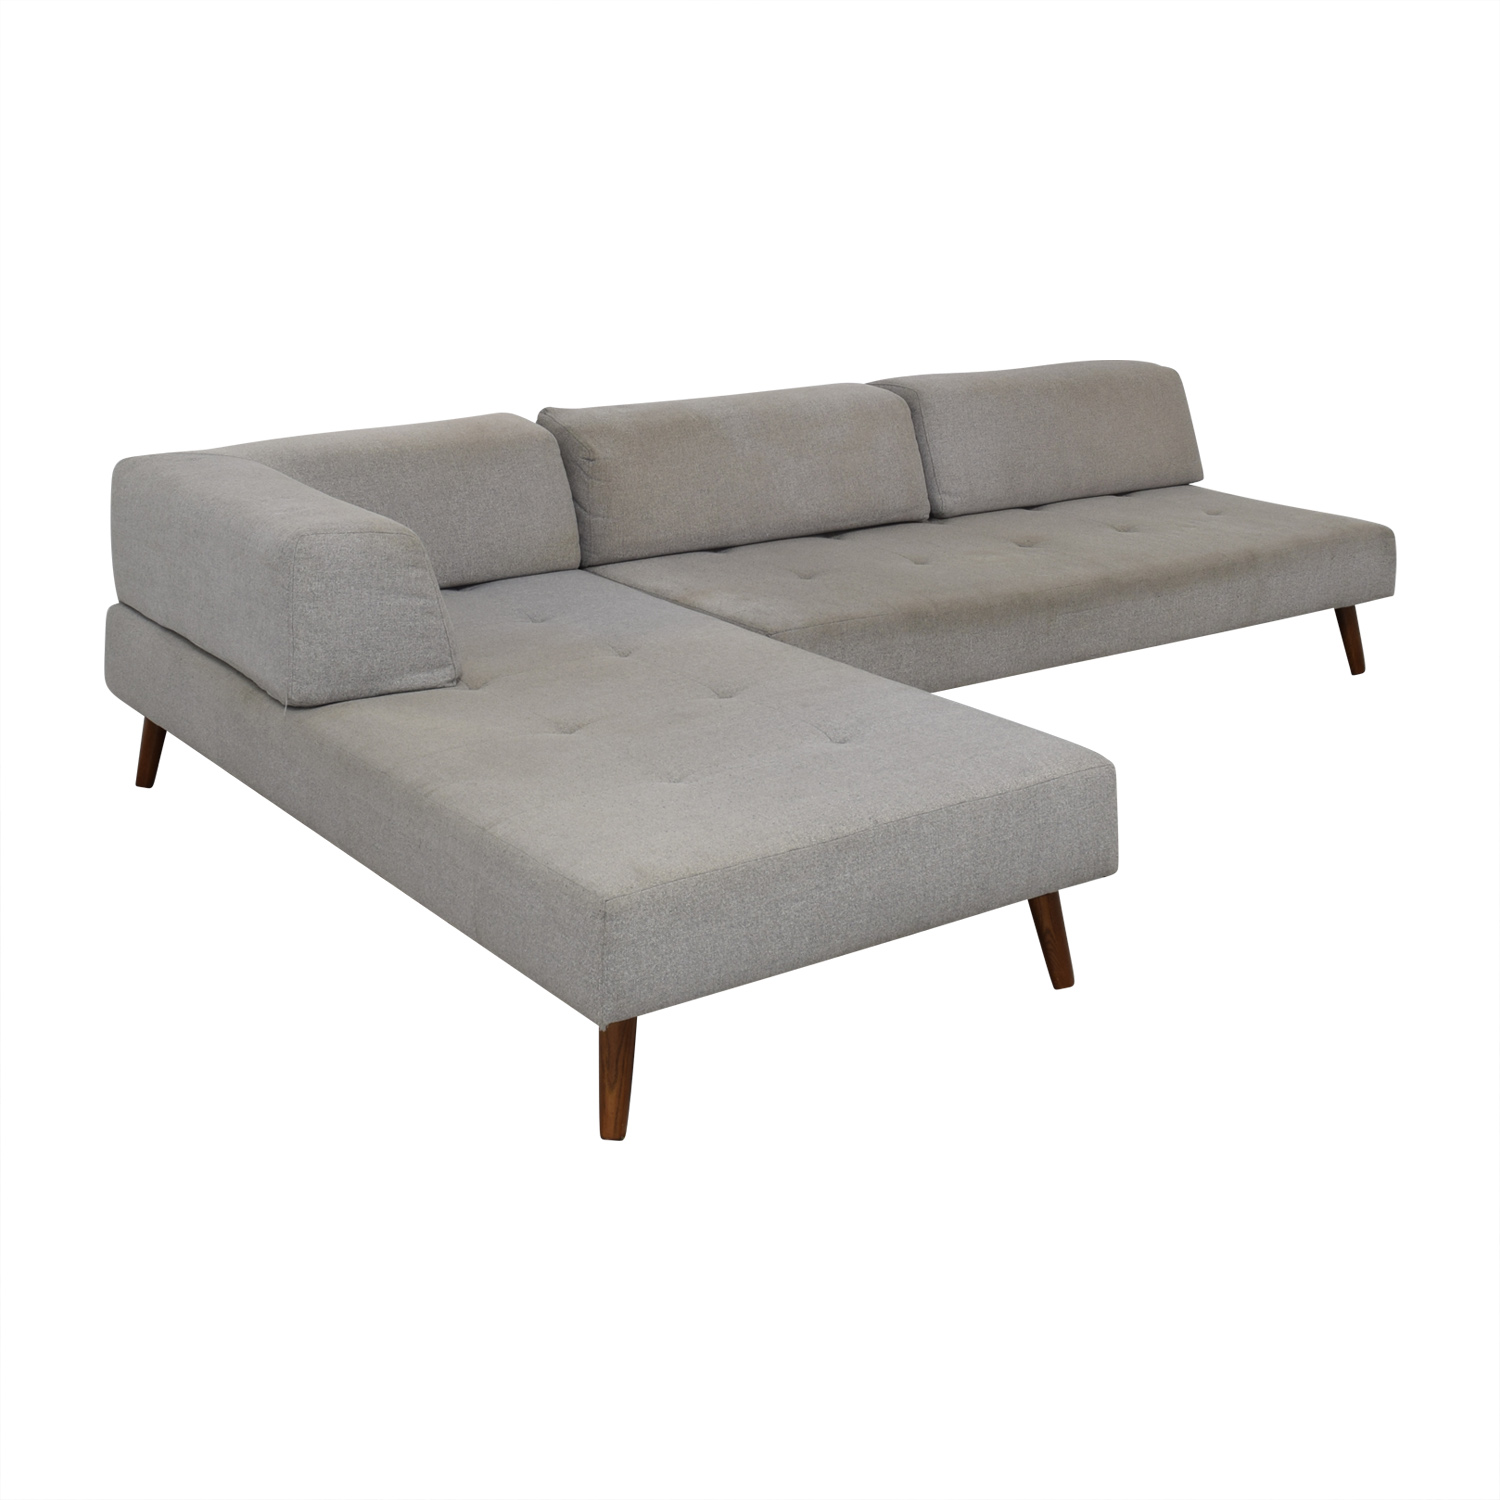 West Elm West Elm Sectional Couch Light grey